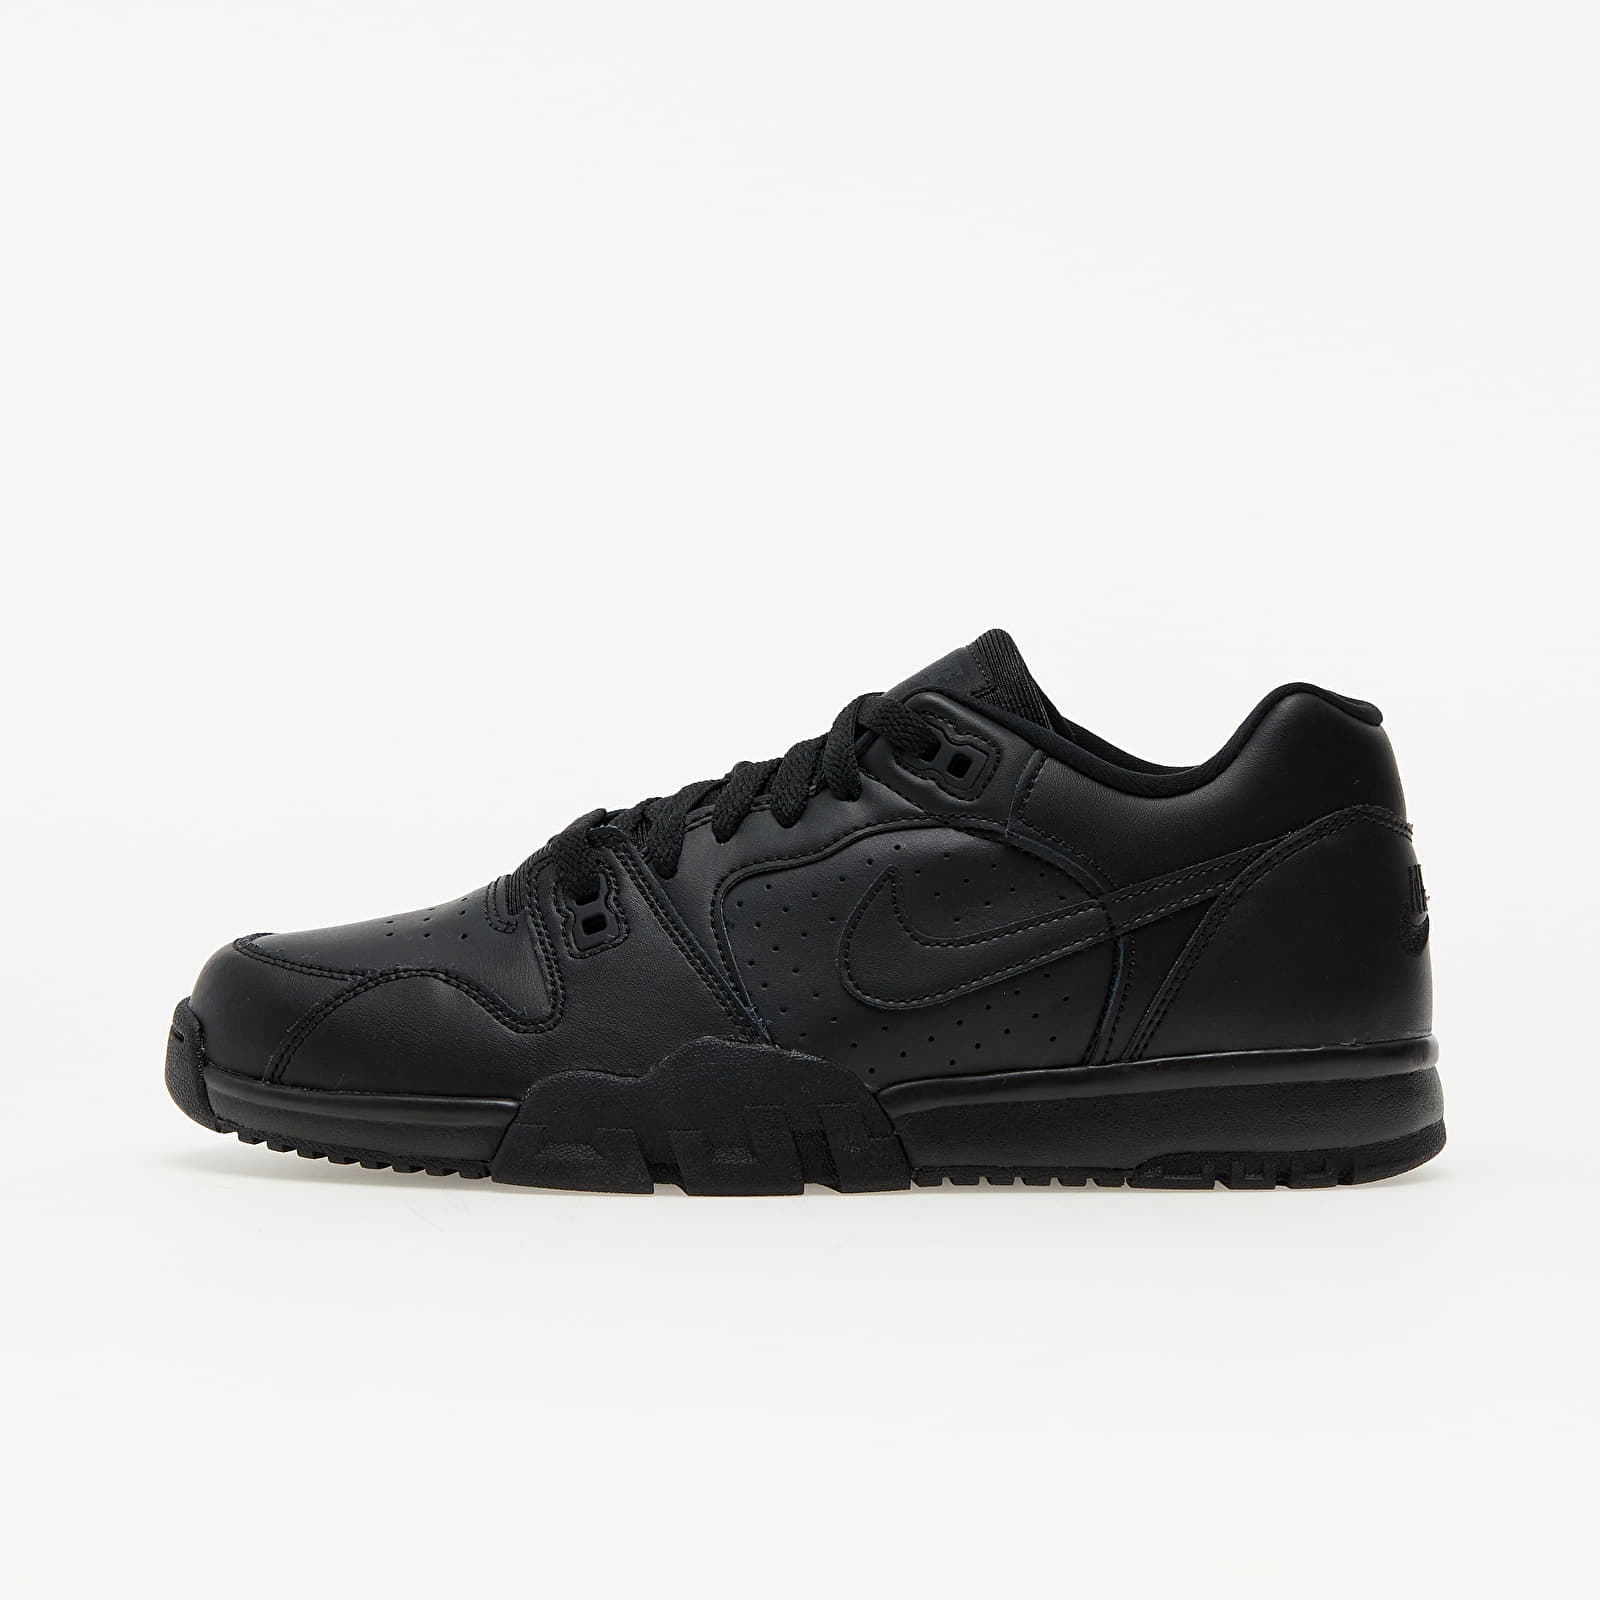 Nike Cross Trainer Low Black/ Black-Black-Off Noir EUR 40.5